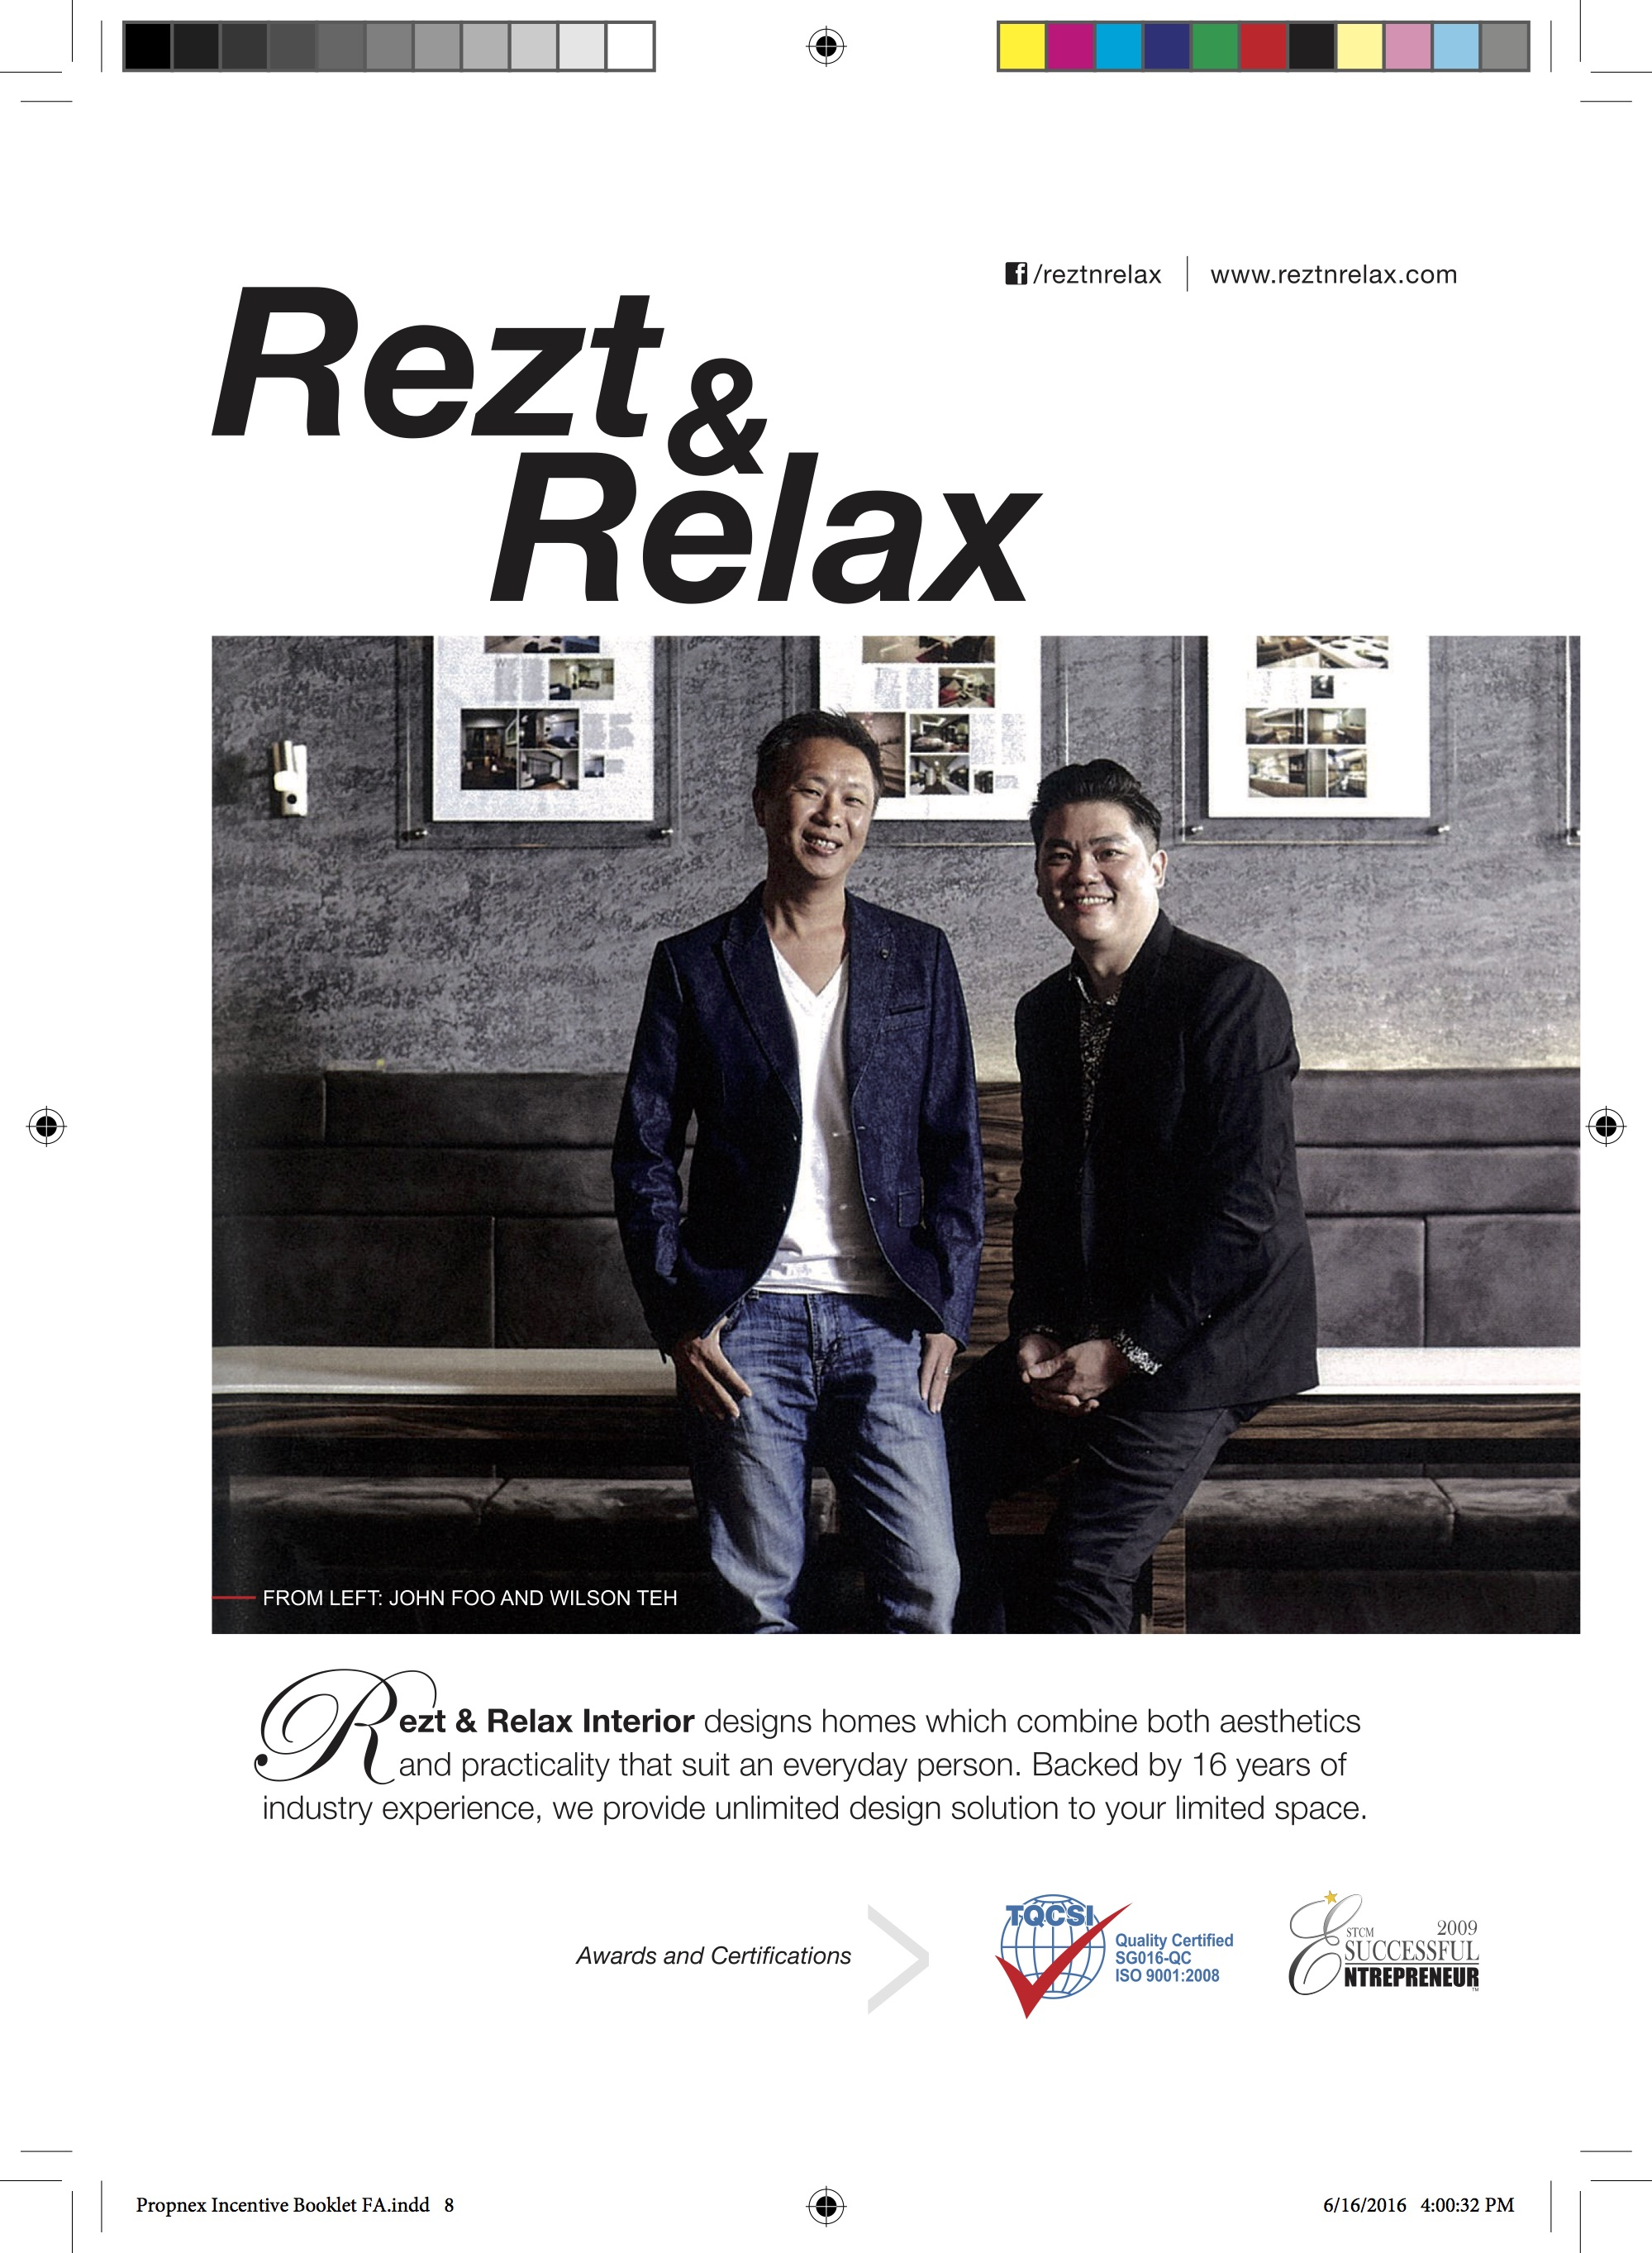 Rezt and relax sample booklet 2 How to print a good and clear booklet How to print a good and clear booklet Rezt and relax sample booklet 2 1